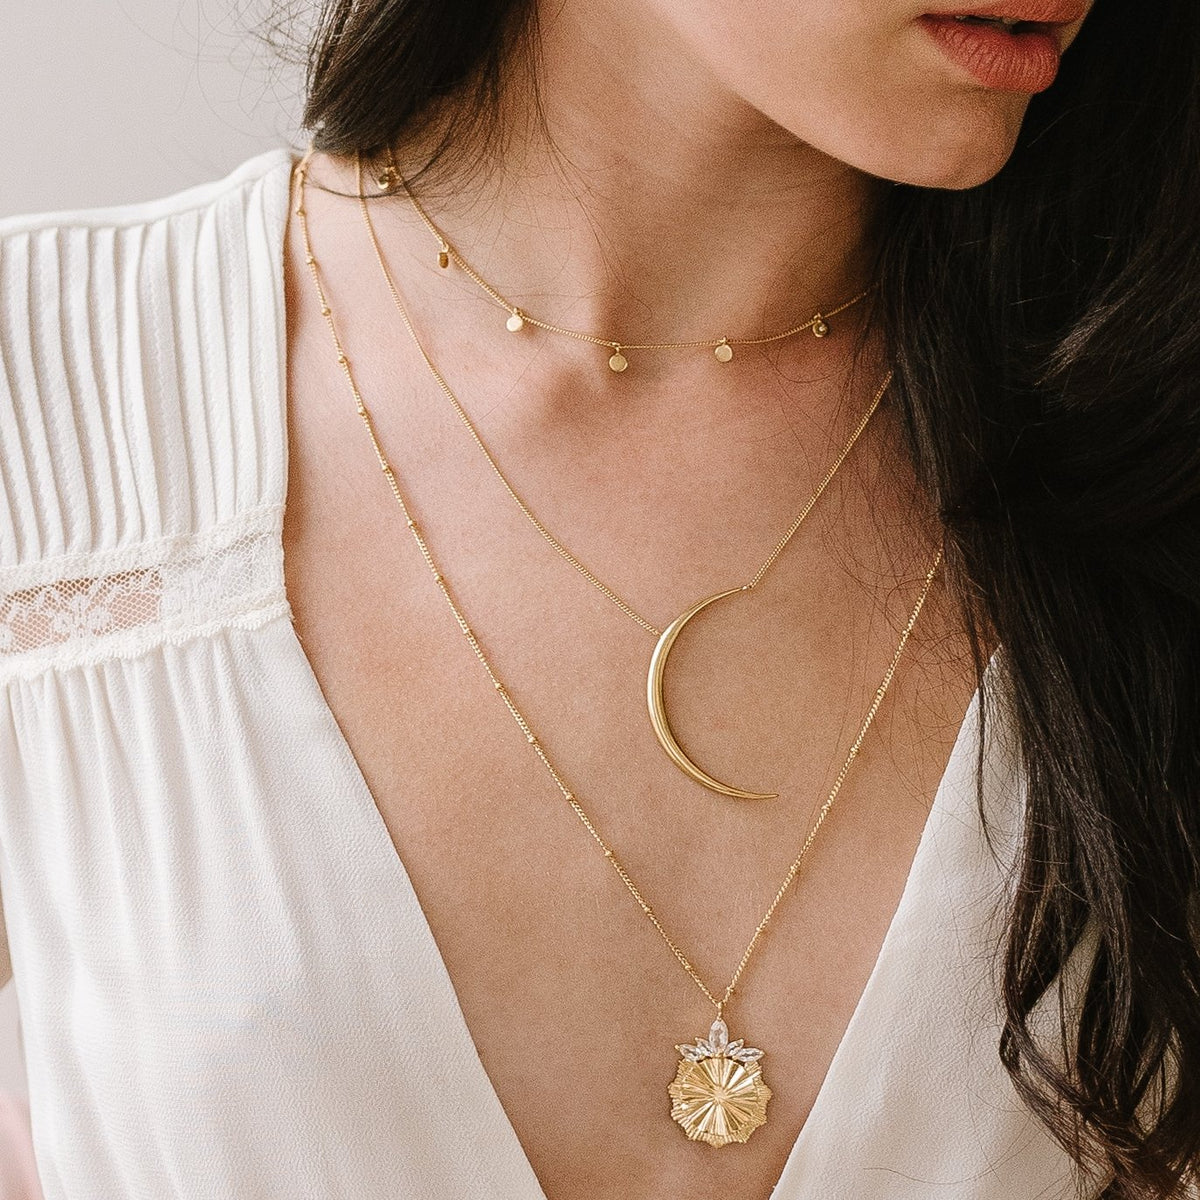 DAINTY POISE DISK NECKLACE - CUBIC ZIRCONIA & GOLD - SO PRETTY CARA COTTER